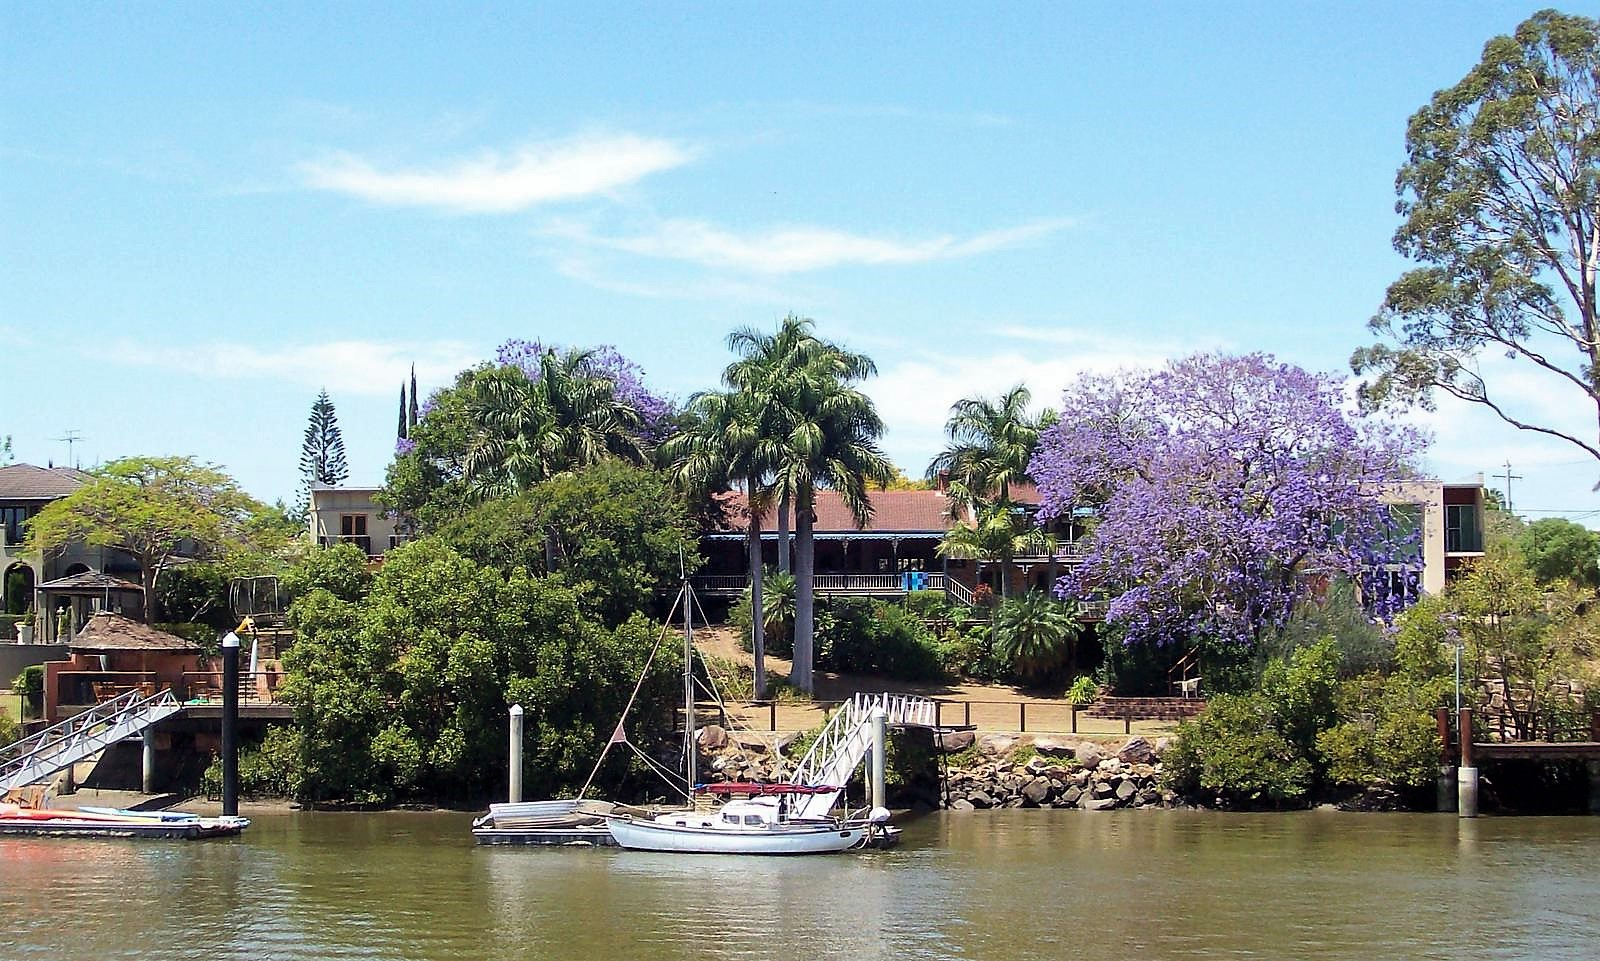 Queensländer House am Brisbane River